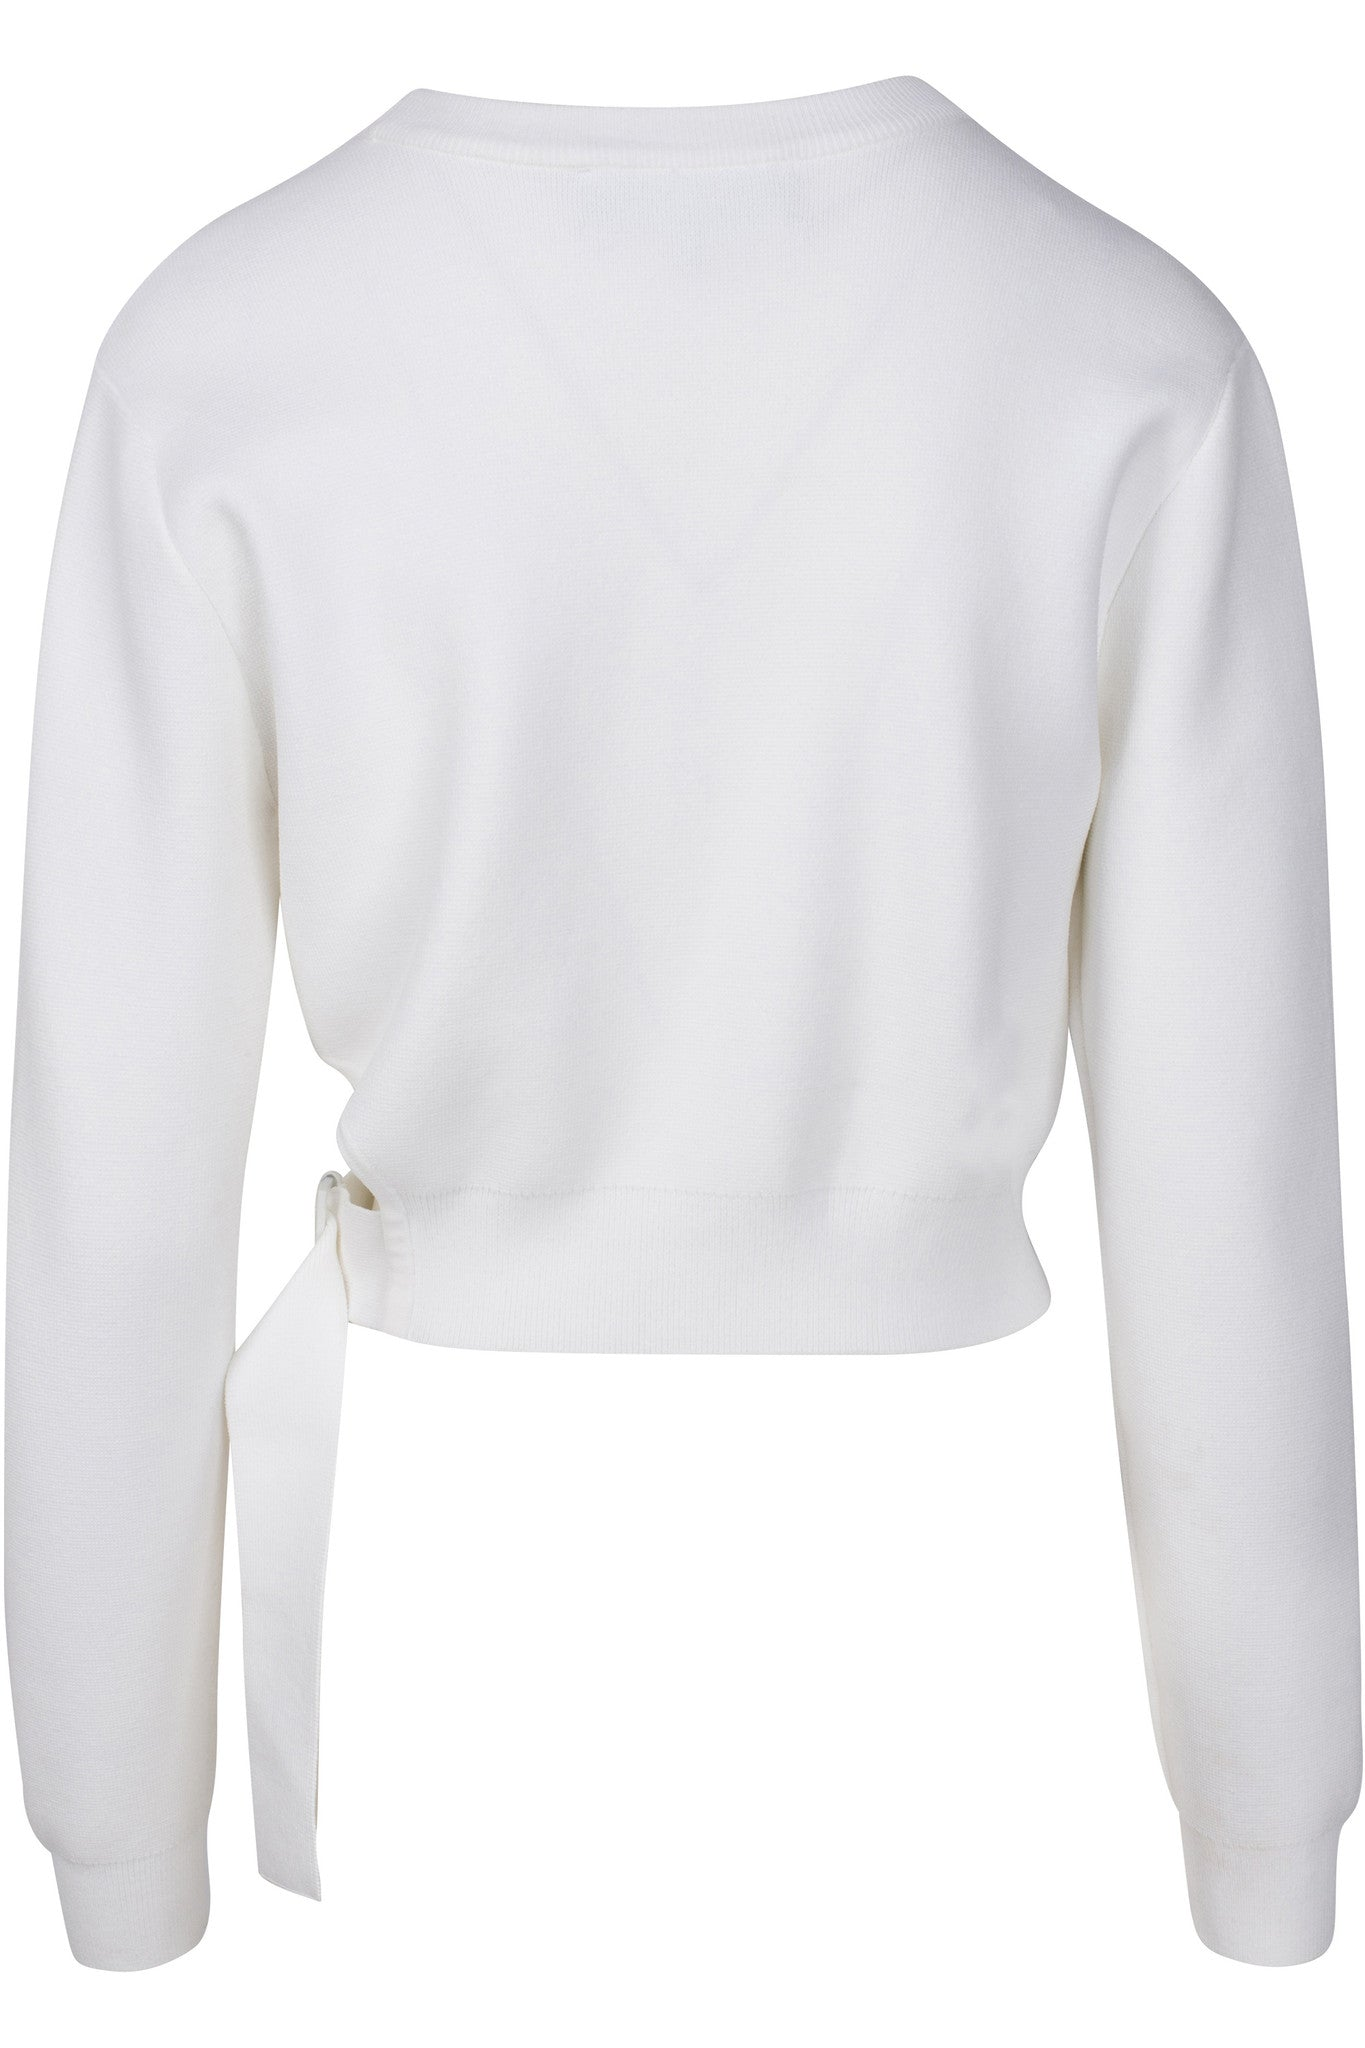 SIDE BUCKLE LONG SLEEVE TOP WHITE